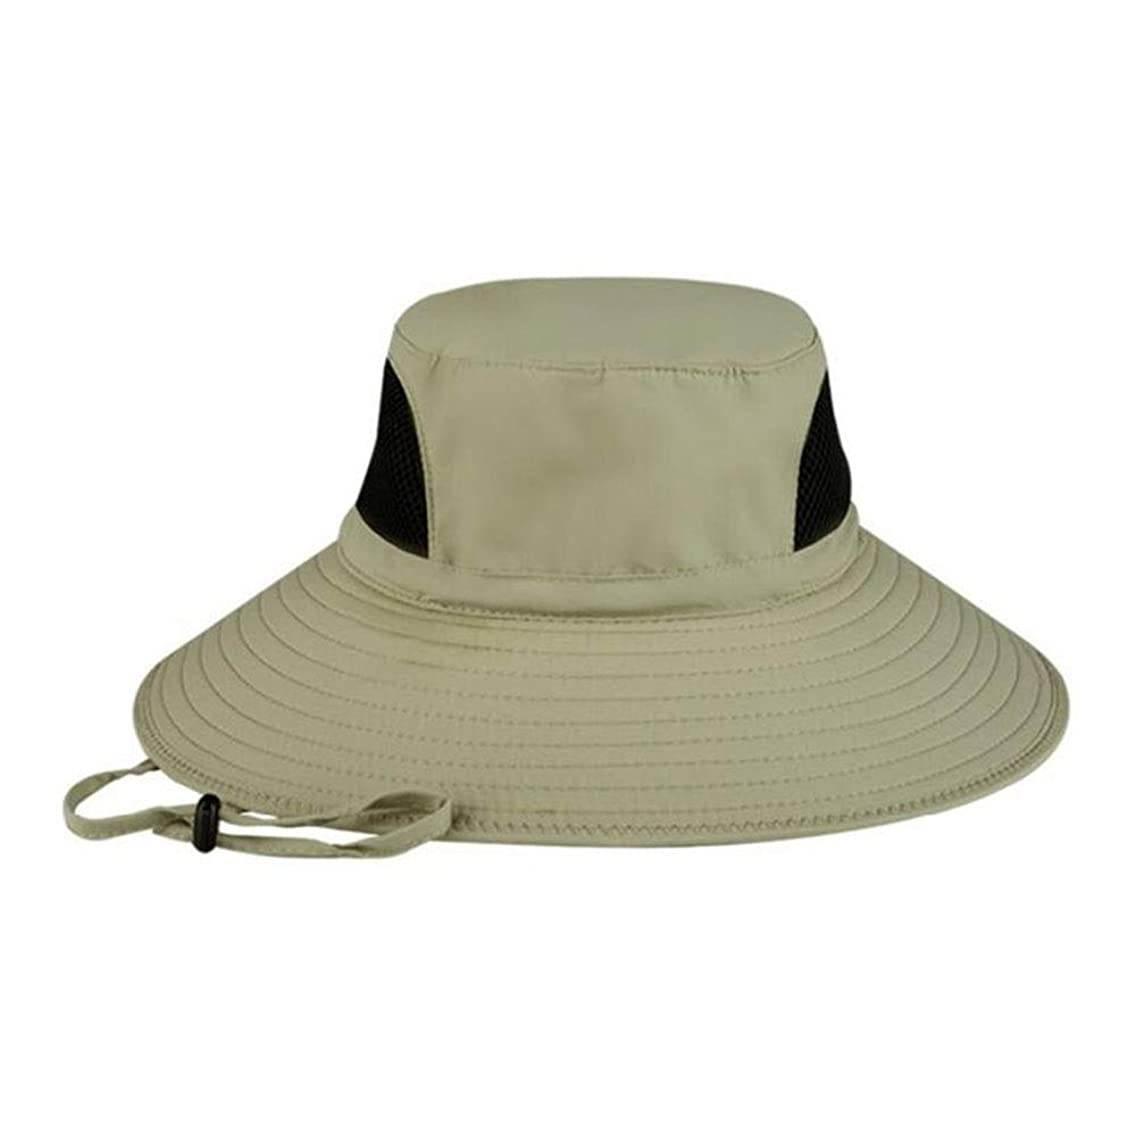 Saisma Men's Outdoor Mountaineering Quick-Drying Breathable Fishing Cap UV Protection Sun Protection Cap Visor Summer Wide-Brimmed Hat Men's Sun Hat (Color : Upgraded Khaki)